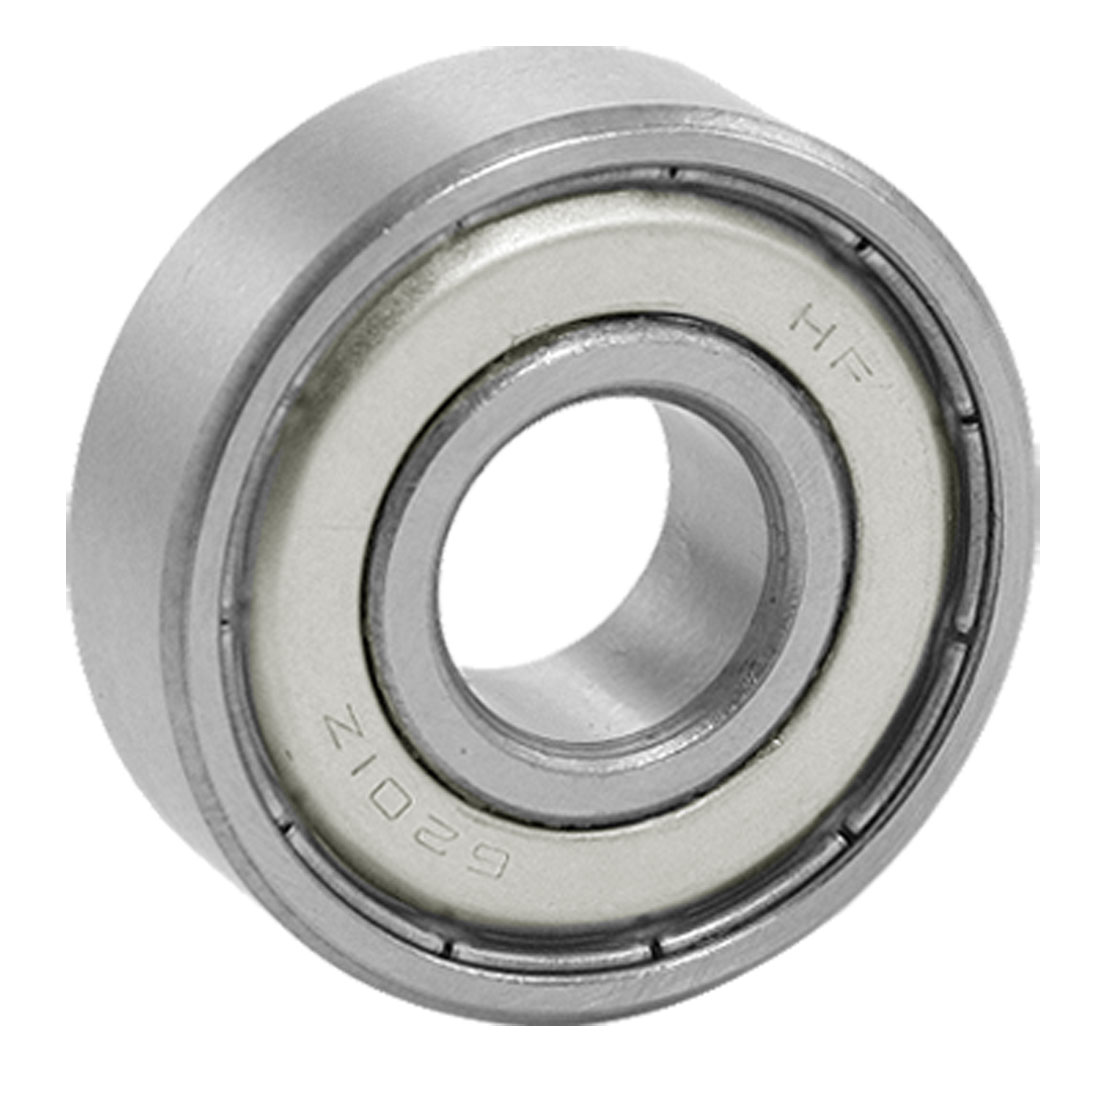 Donepart 6201RS Bearings 12mm ID 32mm OD 10mm Width C3 High Speed Ball Bearings 6201-2RS for Electric Motor 10 Pack Wheels Bike Pump